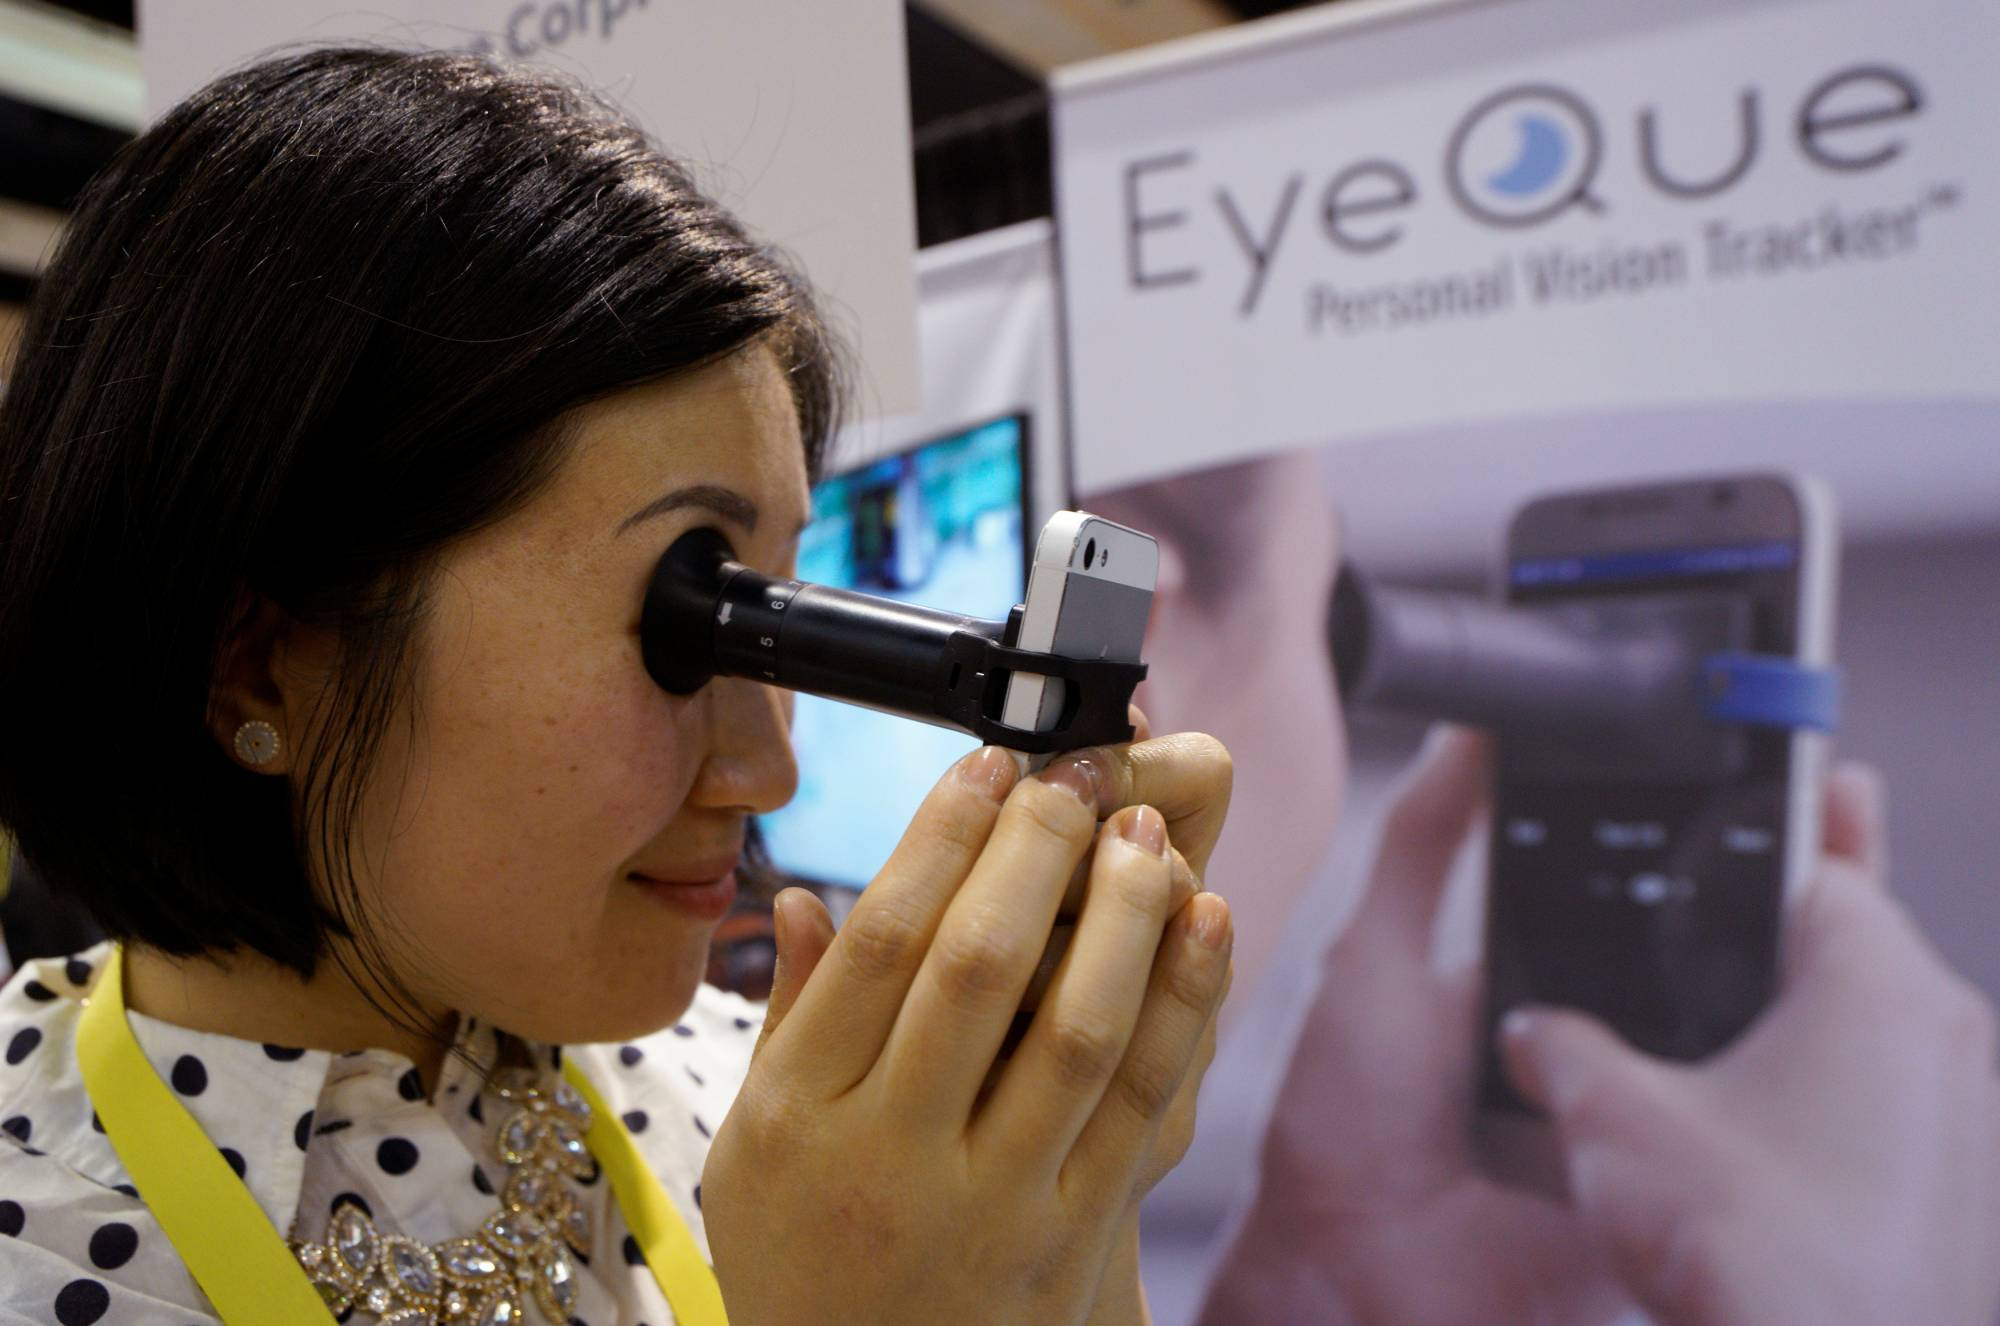 Phoebe Yu of Eyeque Corp., demonstrates her EyeQue vision testing device attached to a smart phone at CES in Las Vegas